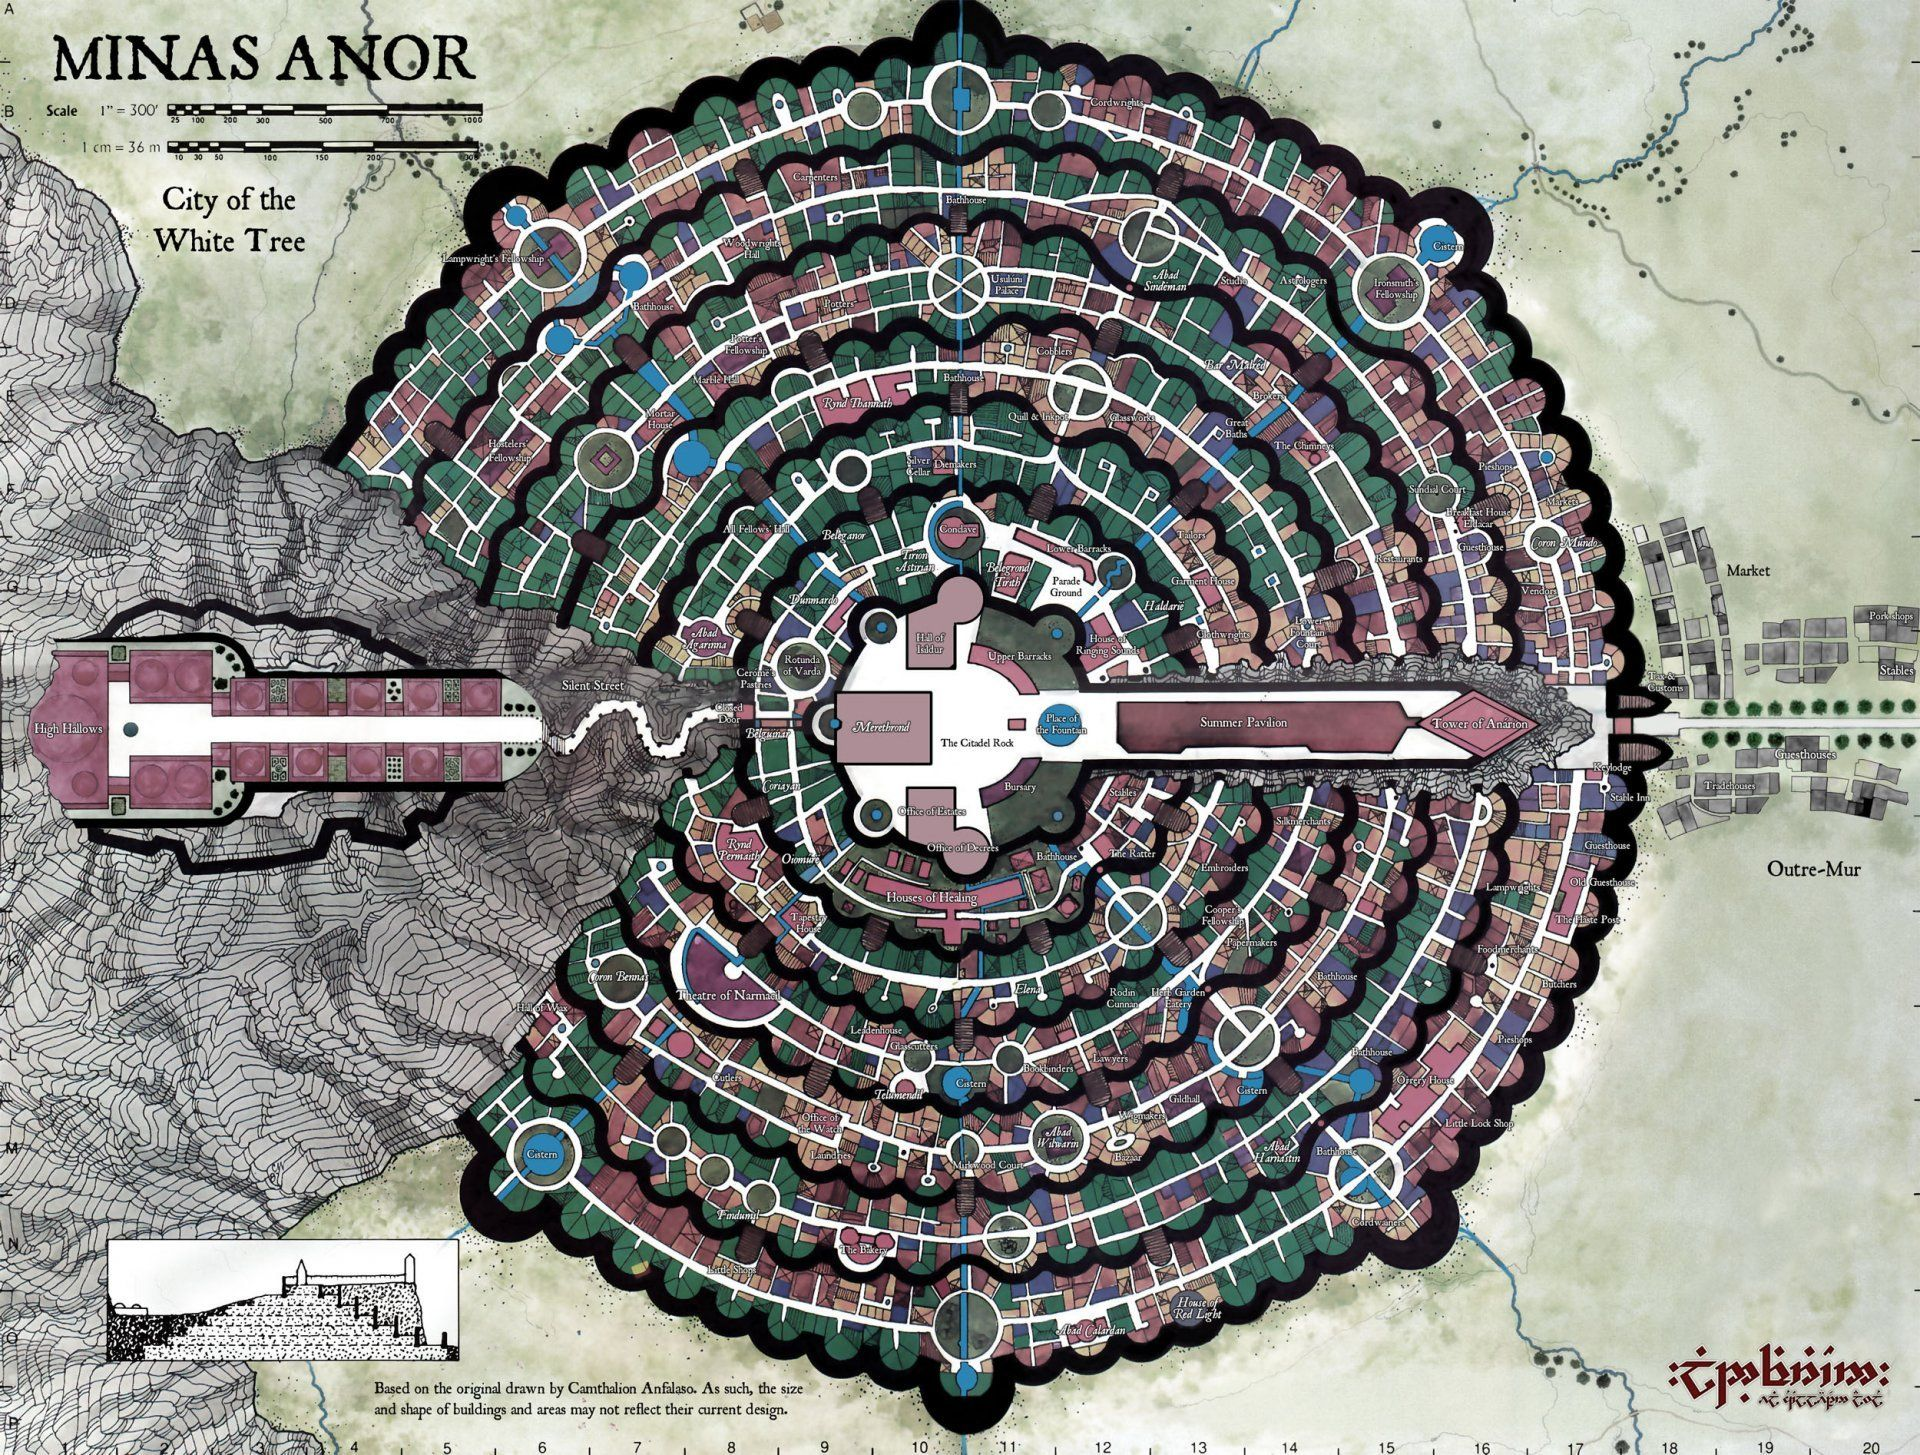 the lord of the rings john ronald reuel the lord of the rings john ronald reuel tolkien quenta silmarillion